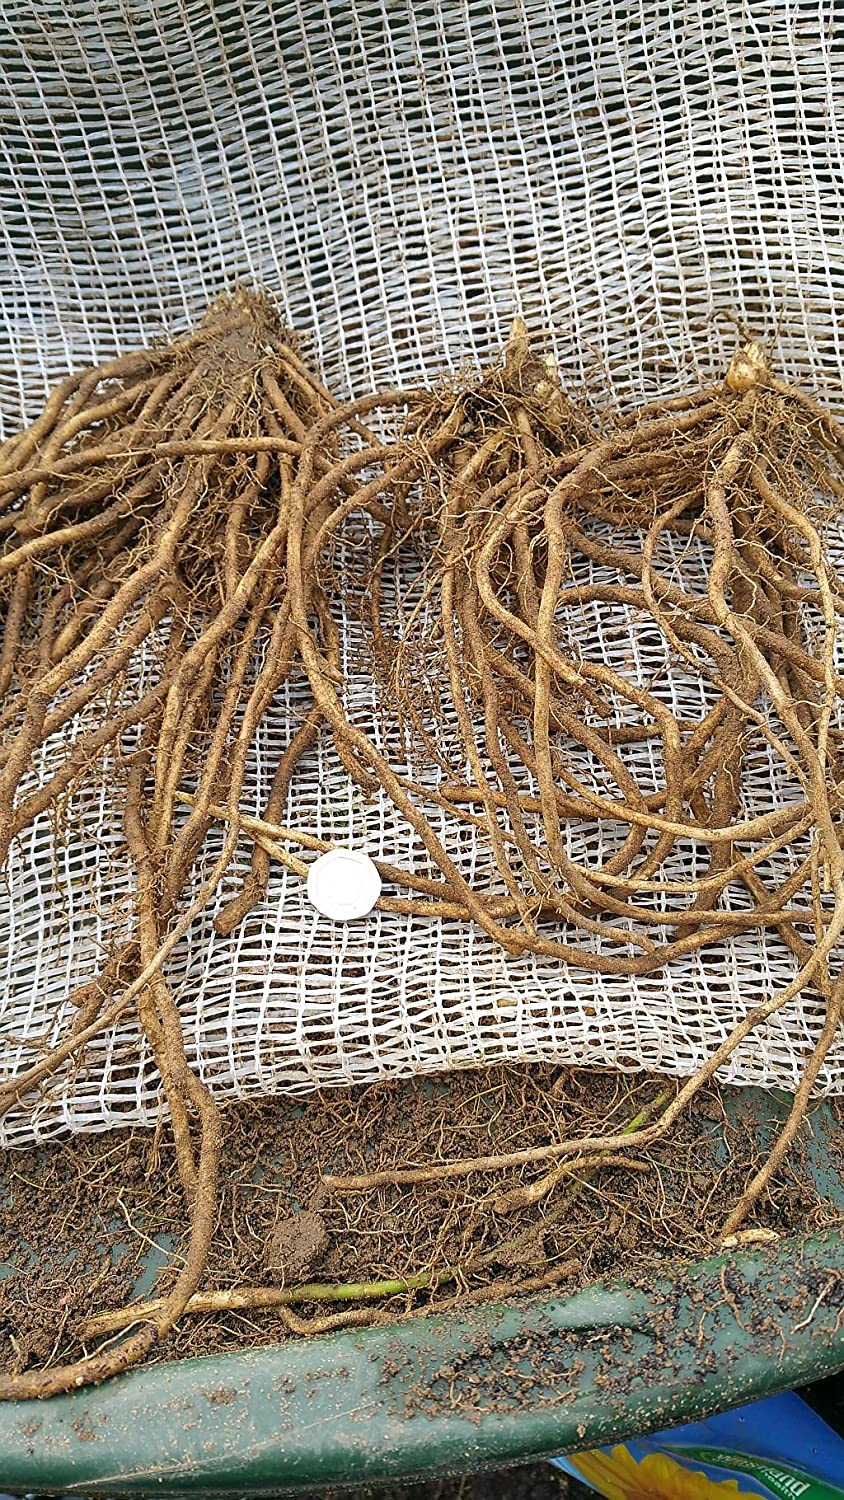 10 x Asparagus 1 yrs old CrownsQuality Crowns ready to Plant Out The Wolds Collection